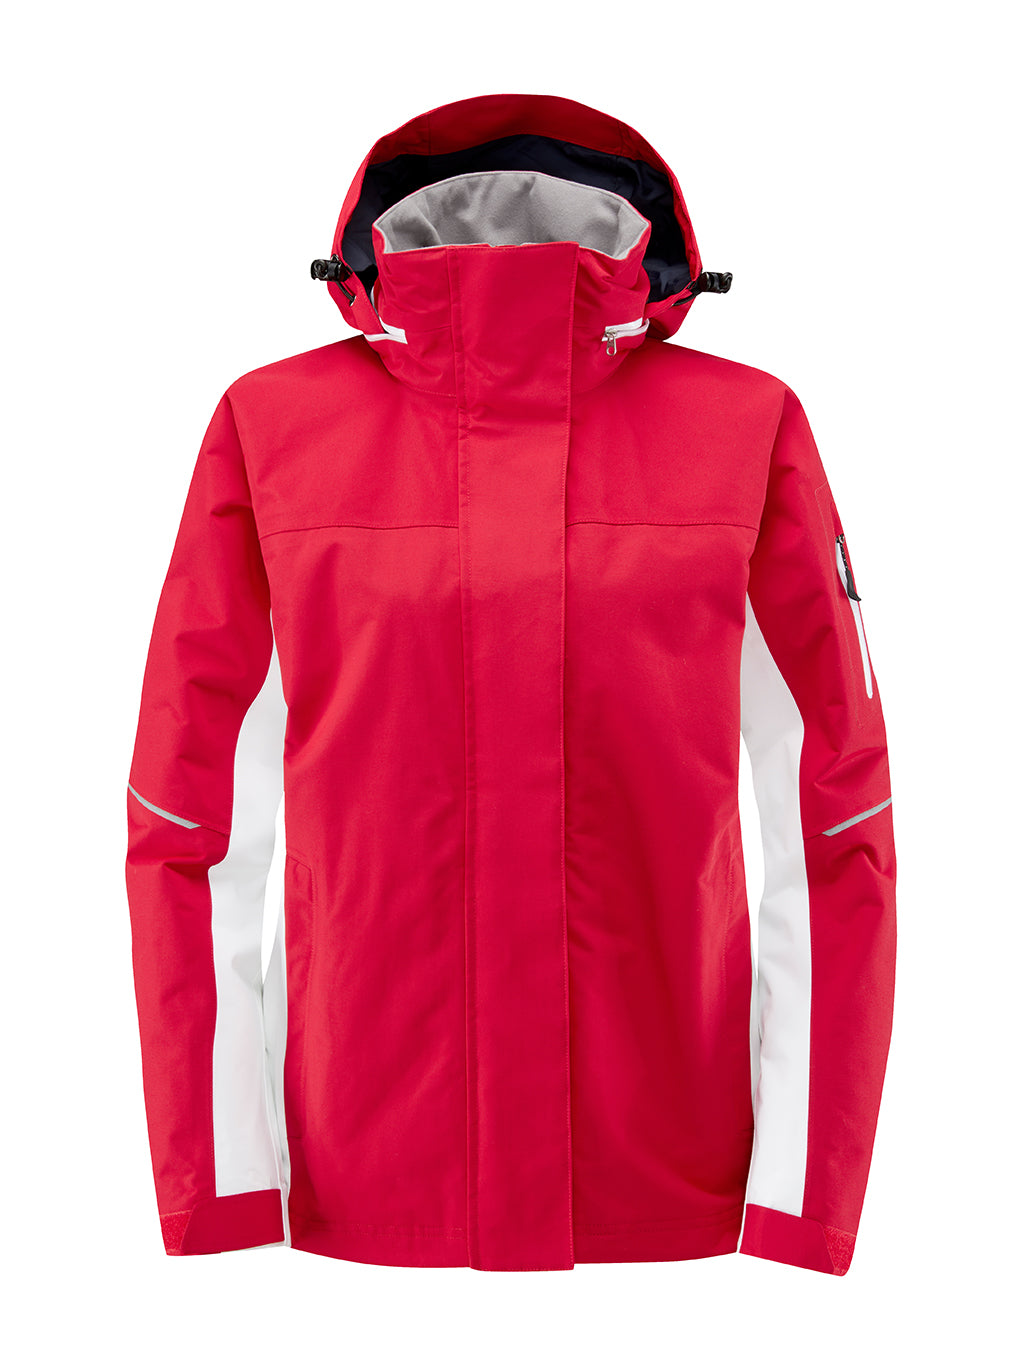 Sail Jacket 2.0 Womens